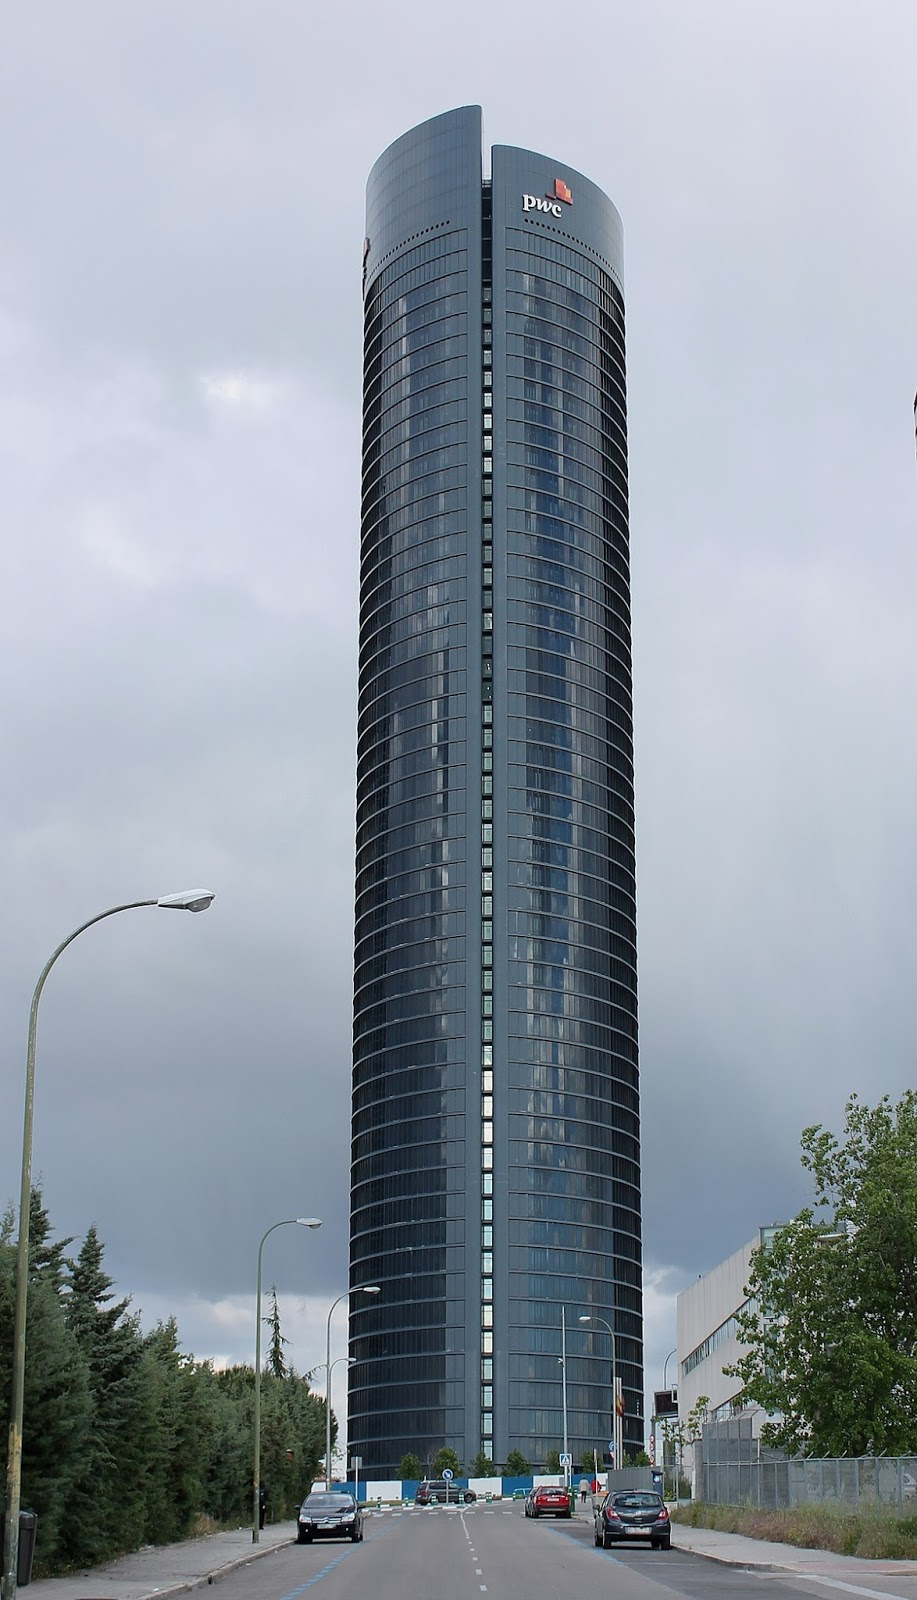 El cole de carmen for Piso 9 torre latino